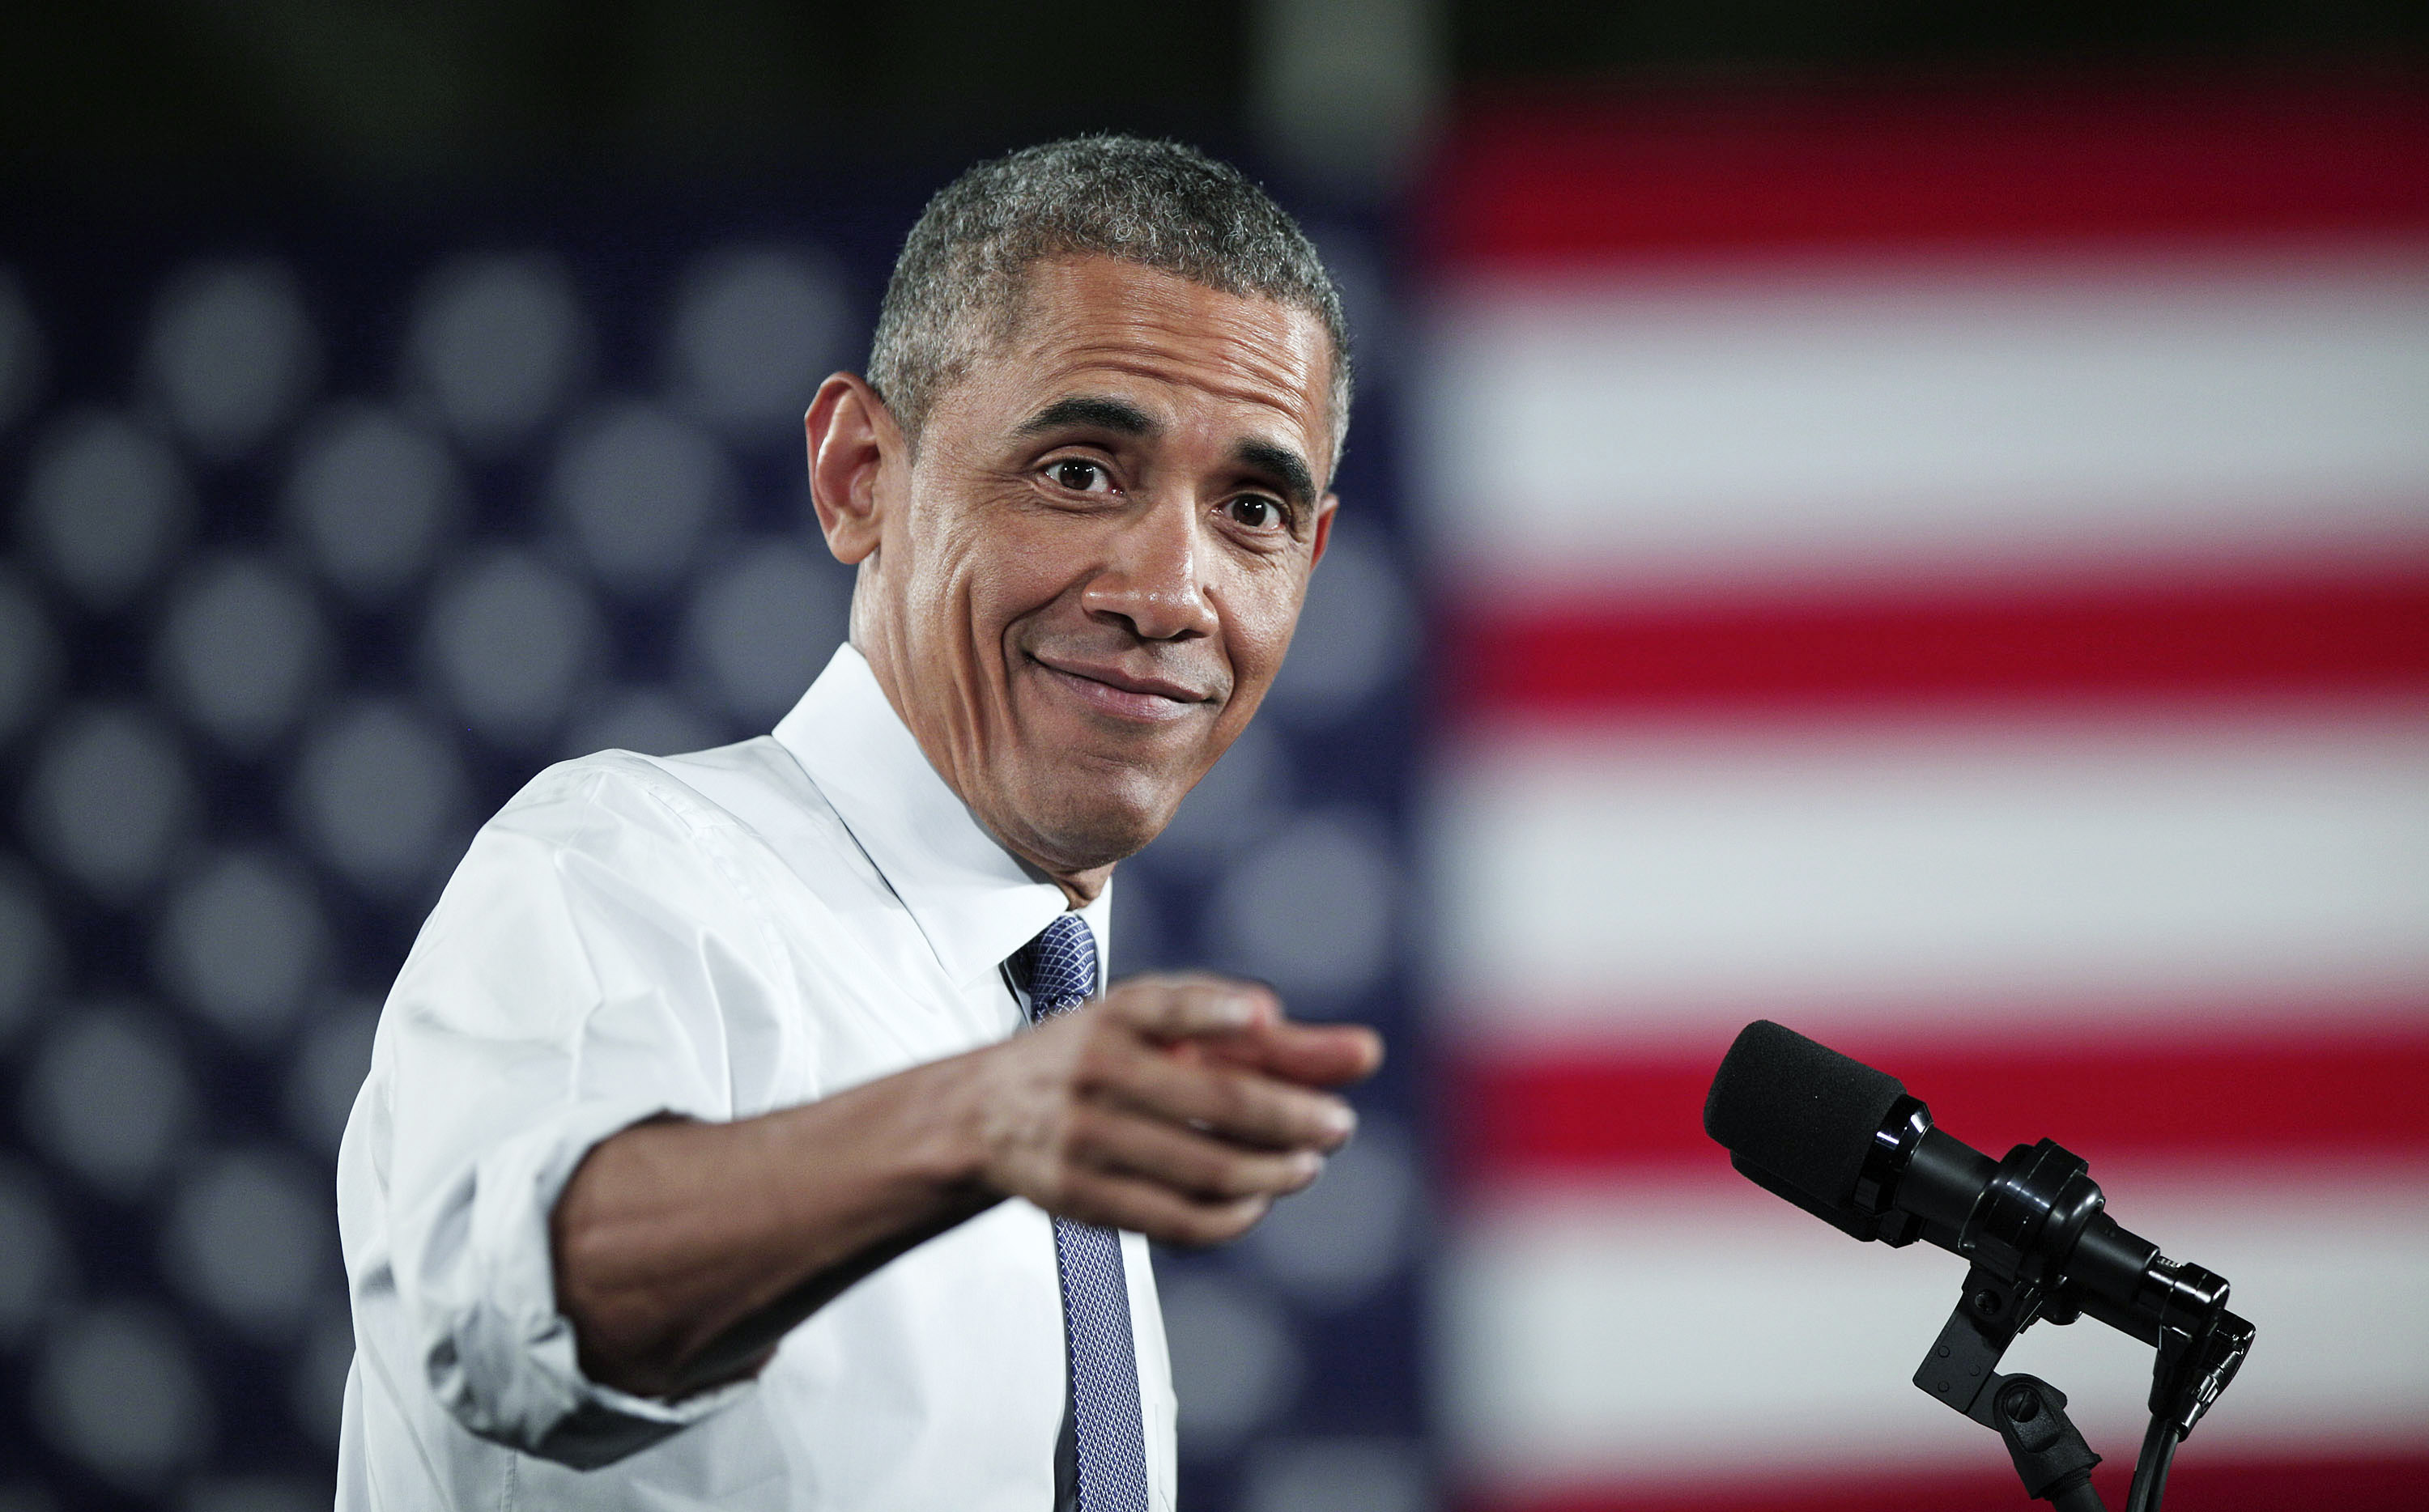 barack obama claims deficit has decreased by two 1